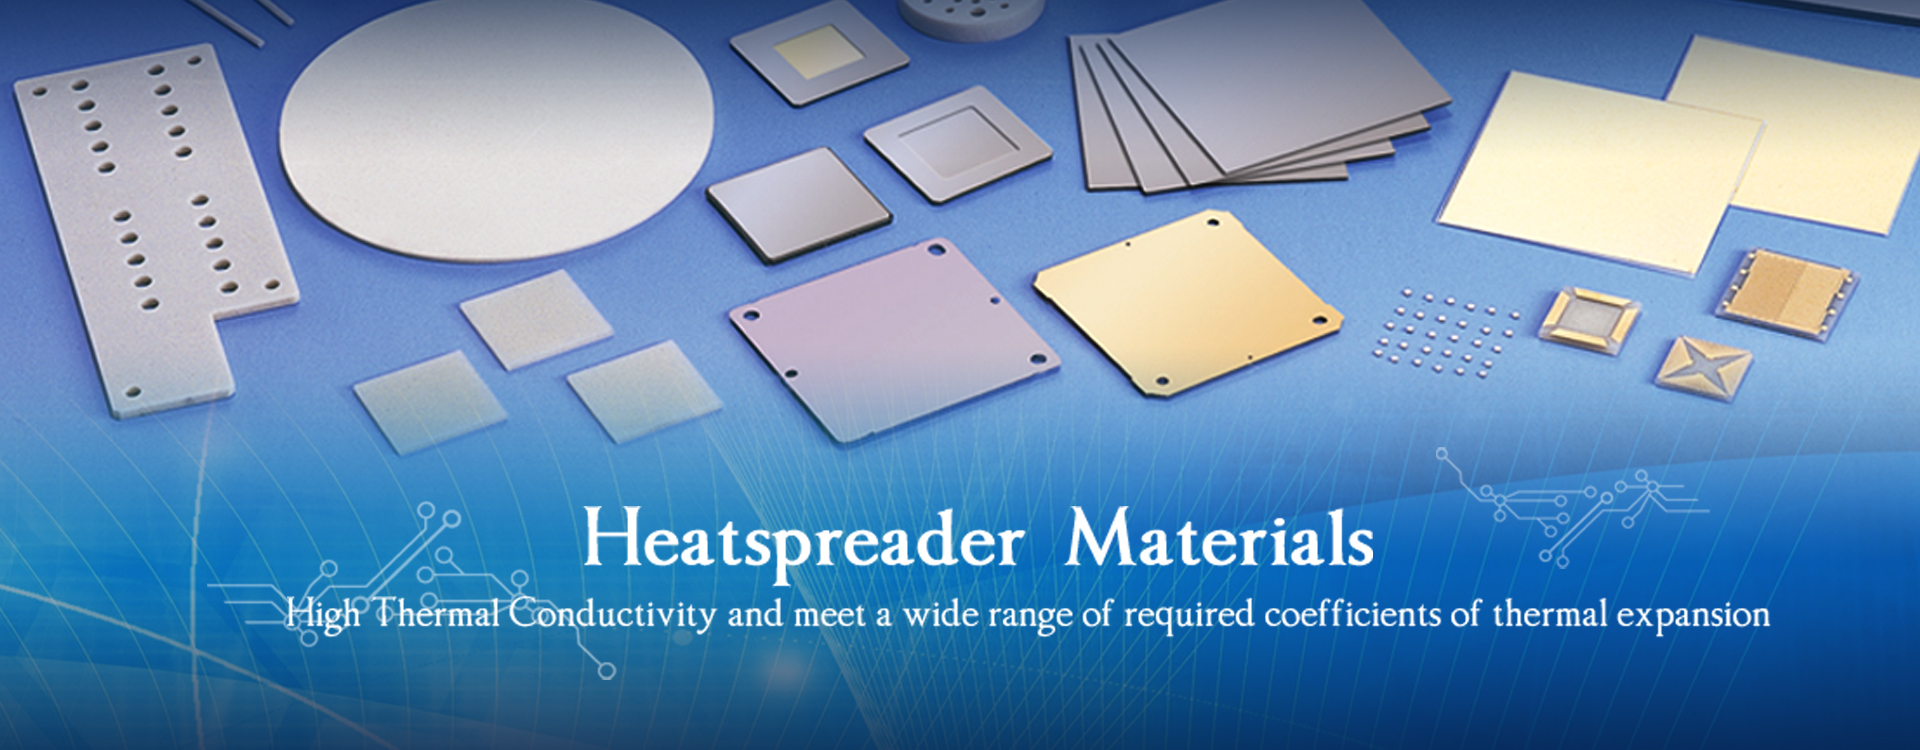 Electronic materials supplier